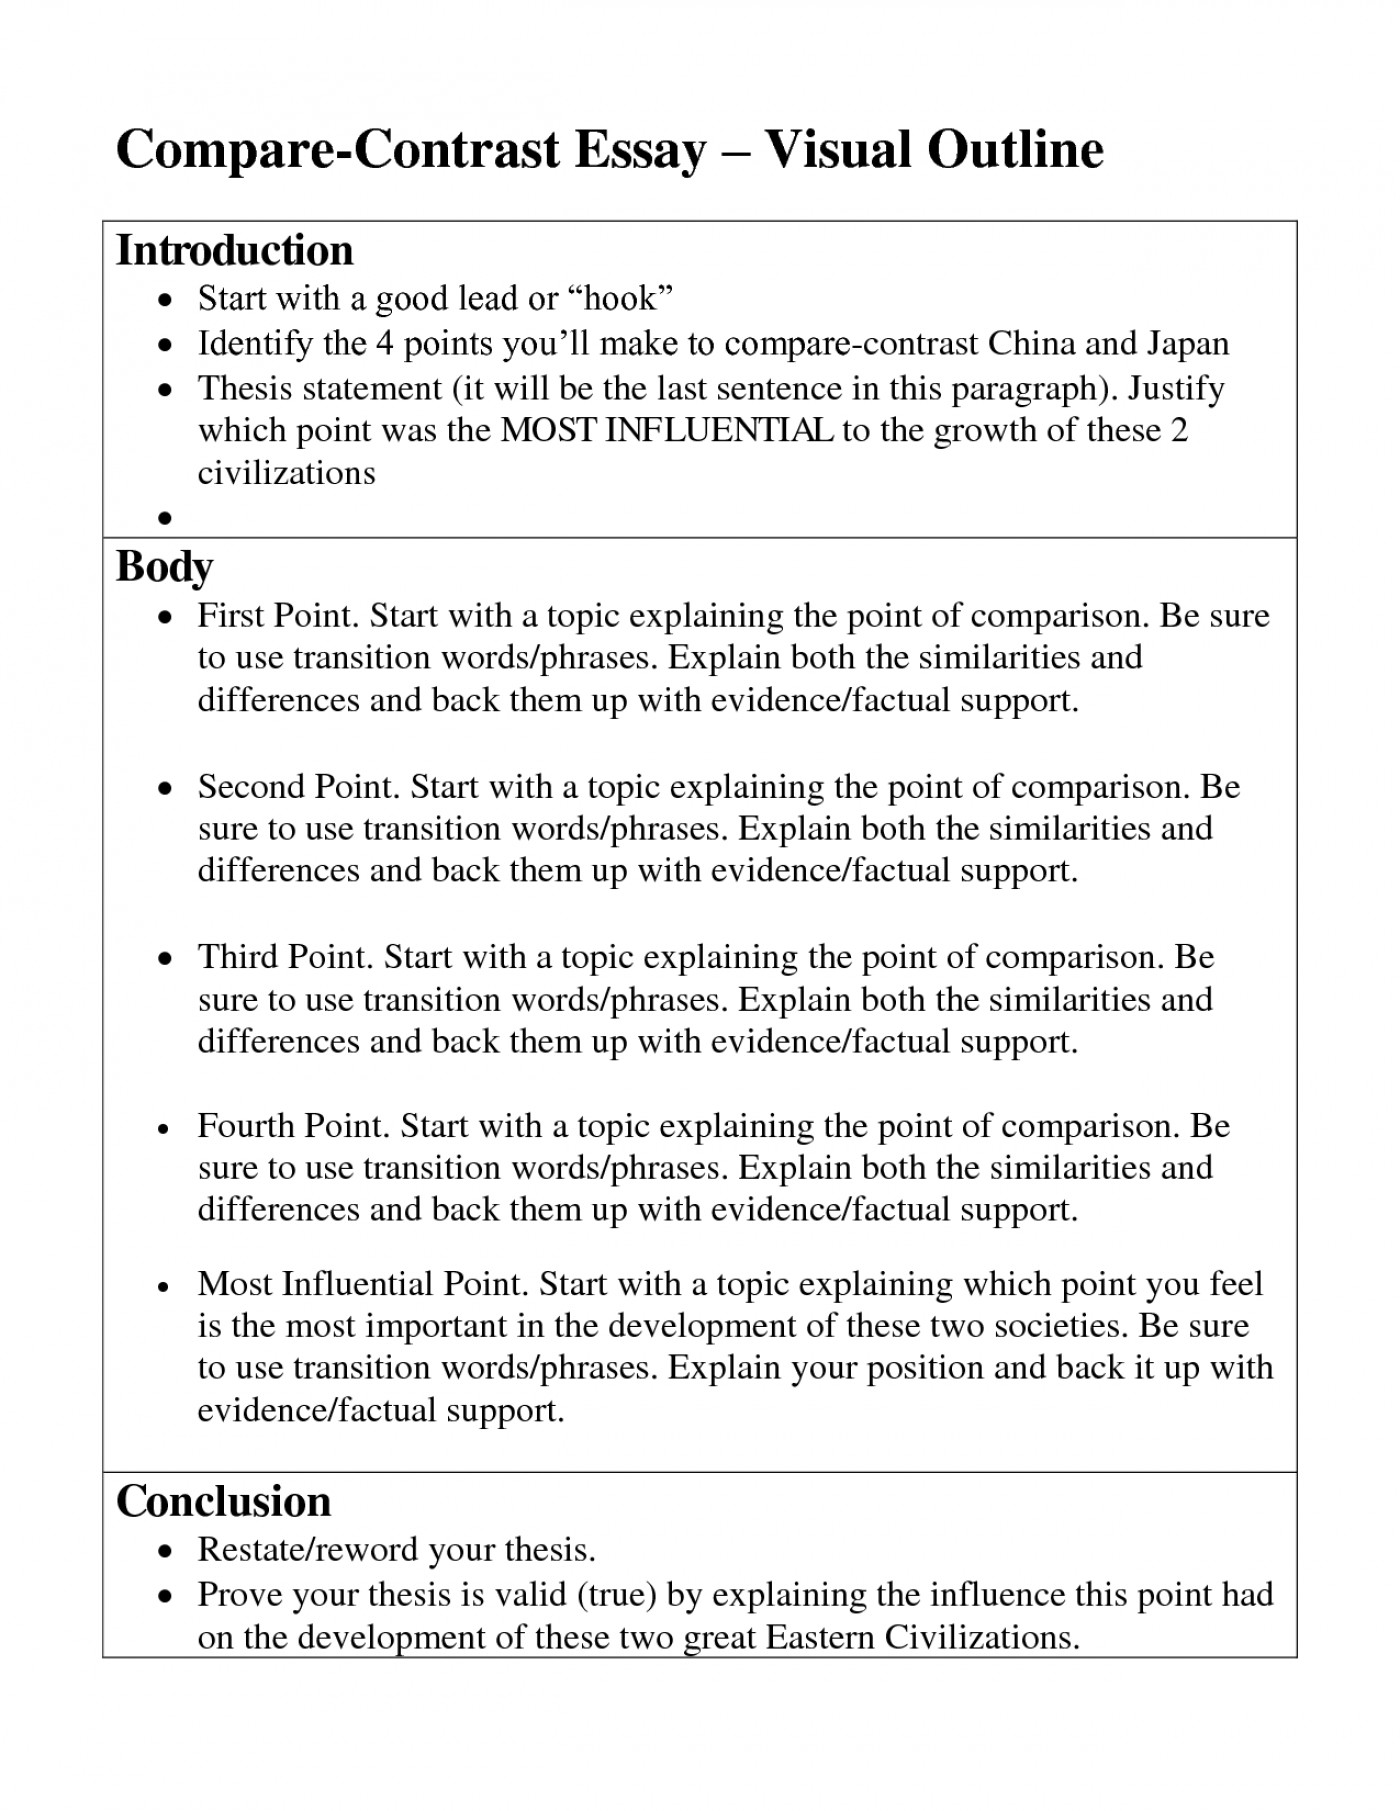 009 Good Compare And Contrast Essay Unbelievable Title Generator Examples High School Titles 1400